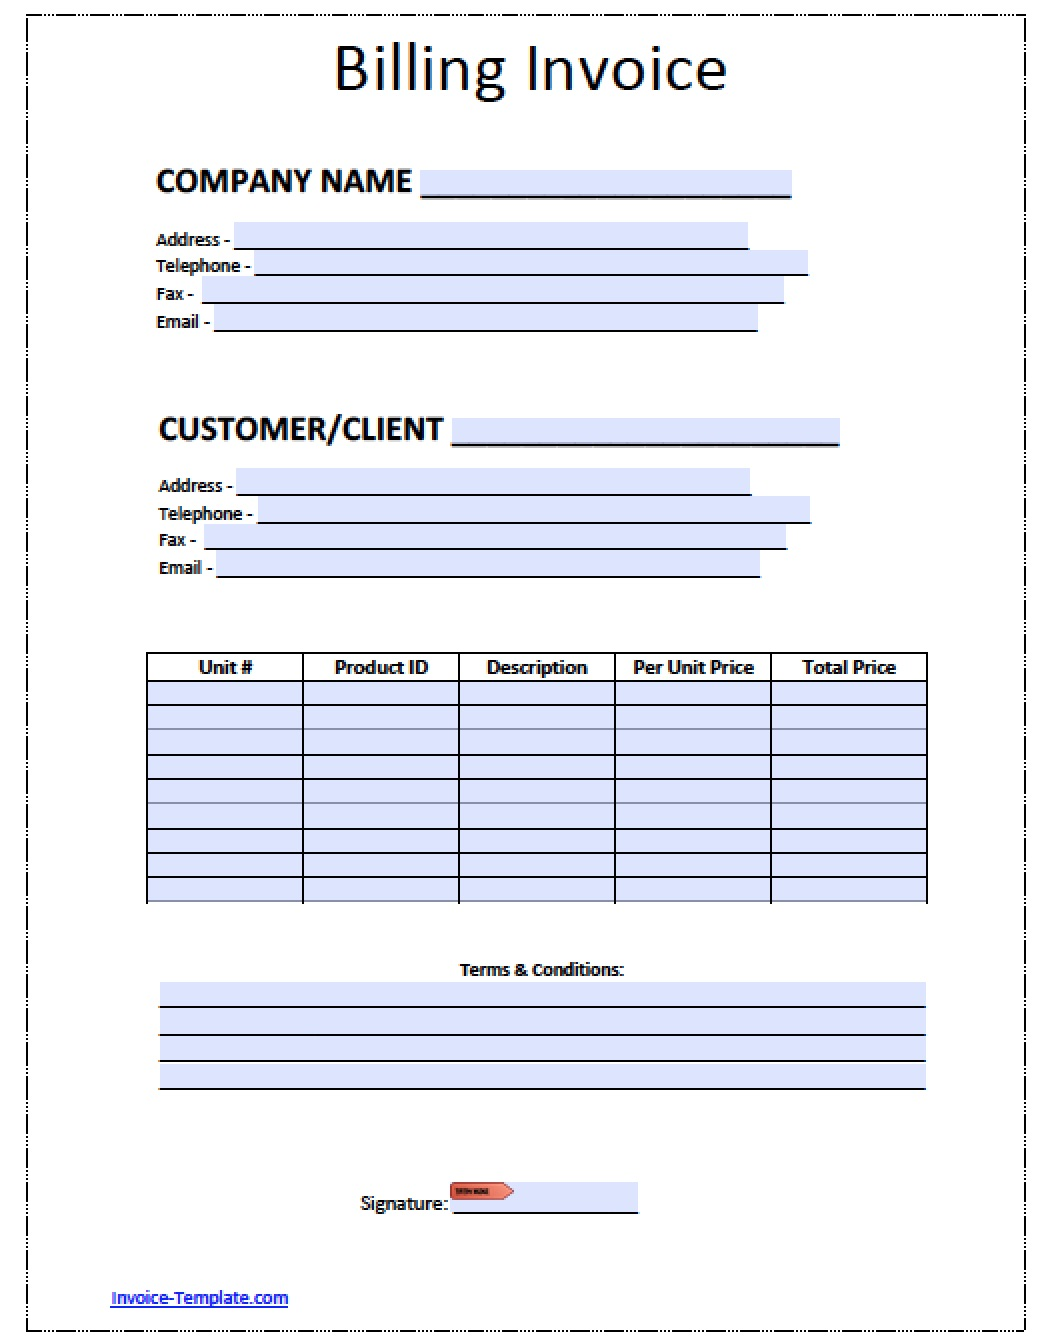 Billing Invoice Template Word Pdf  Customer Receipt Template